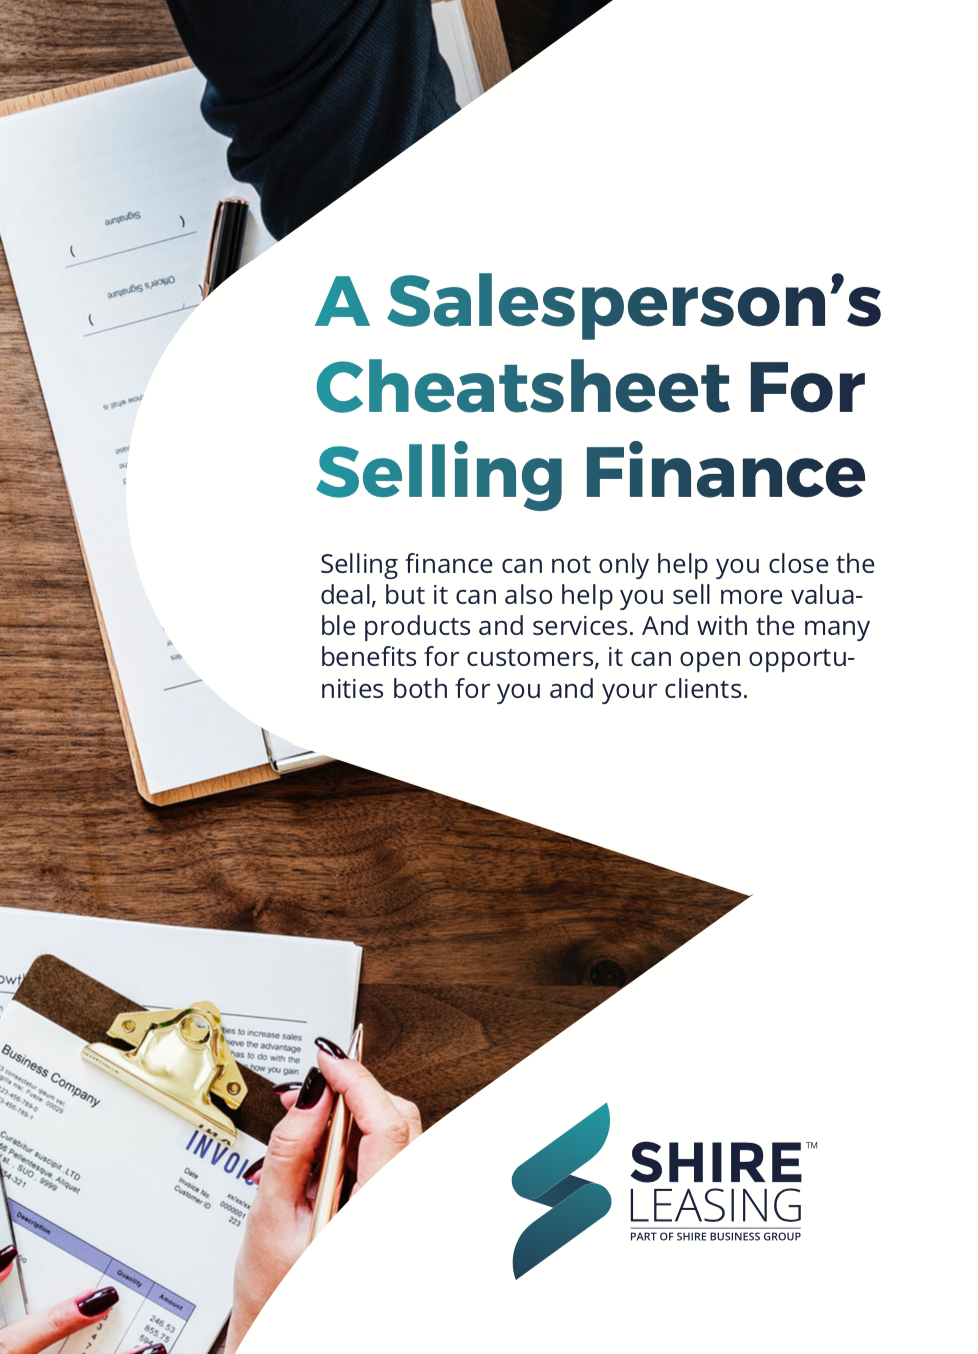 Cheat sheet for selling finance